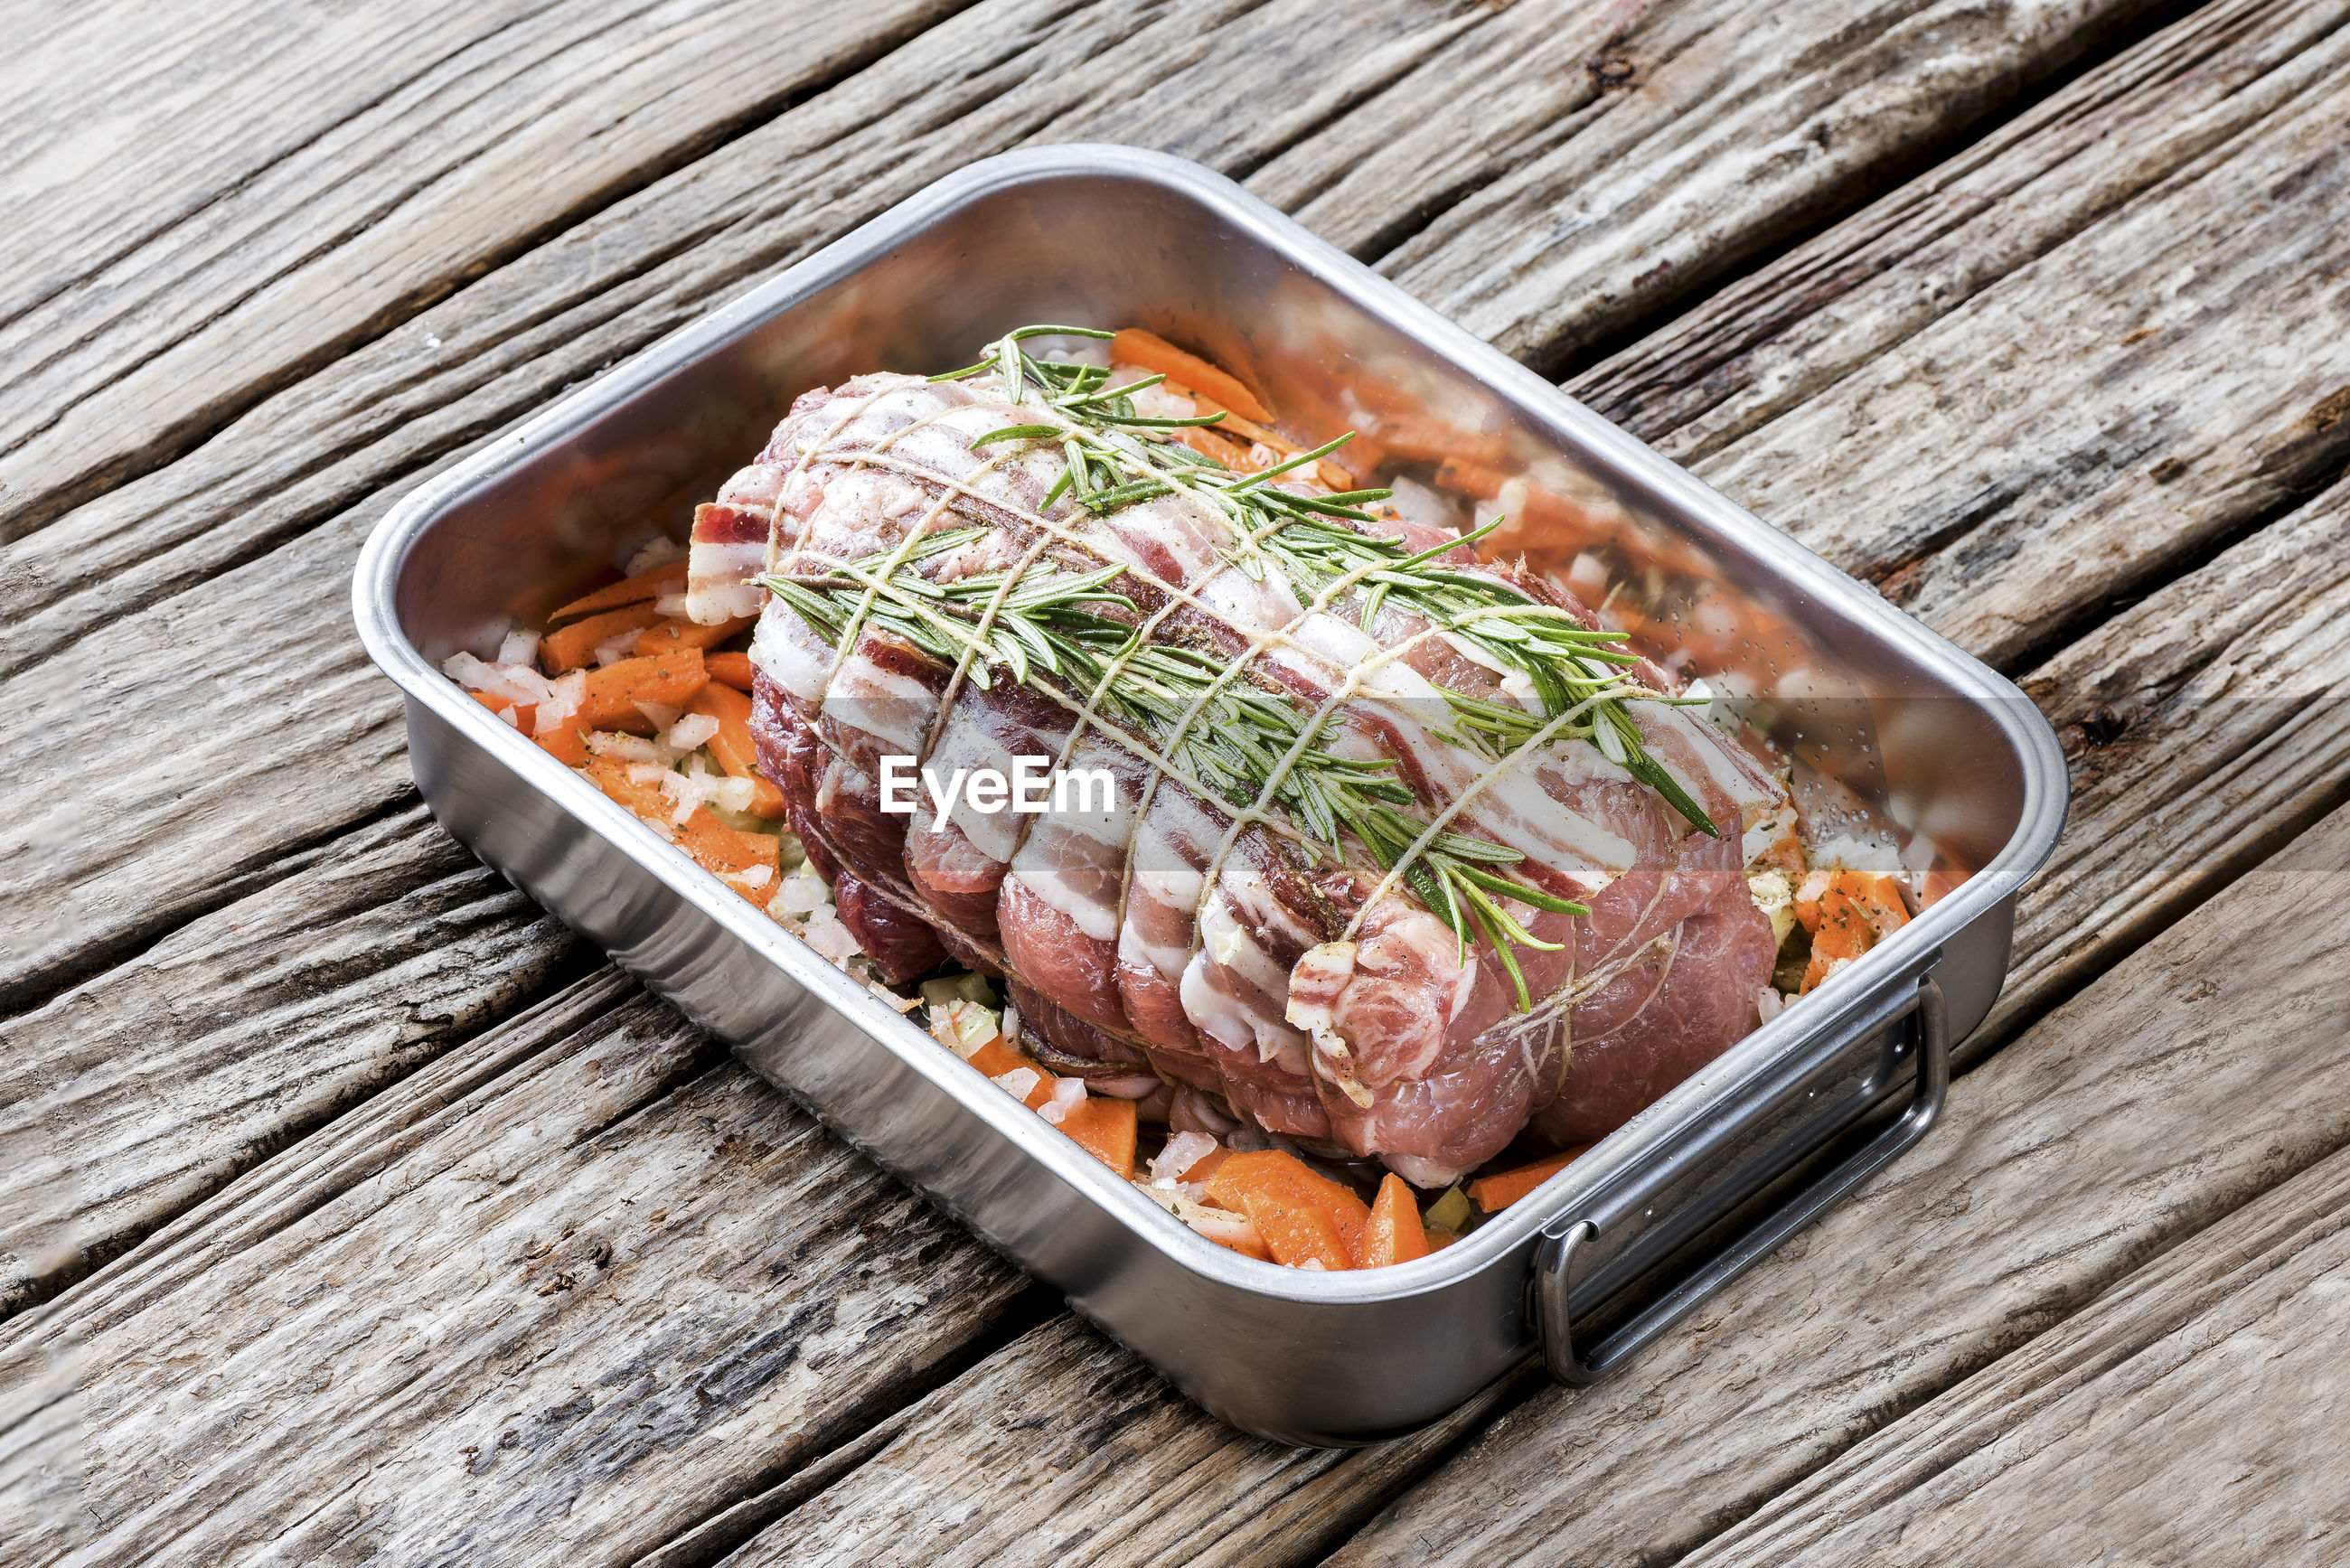 High angle view of meat in container on table